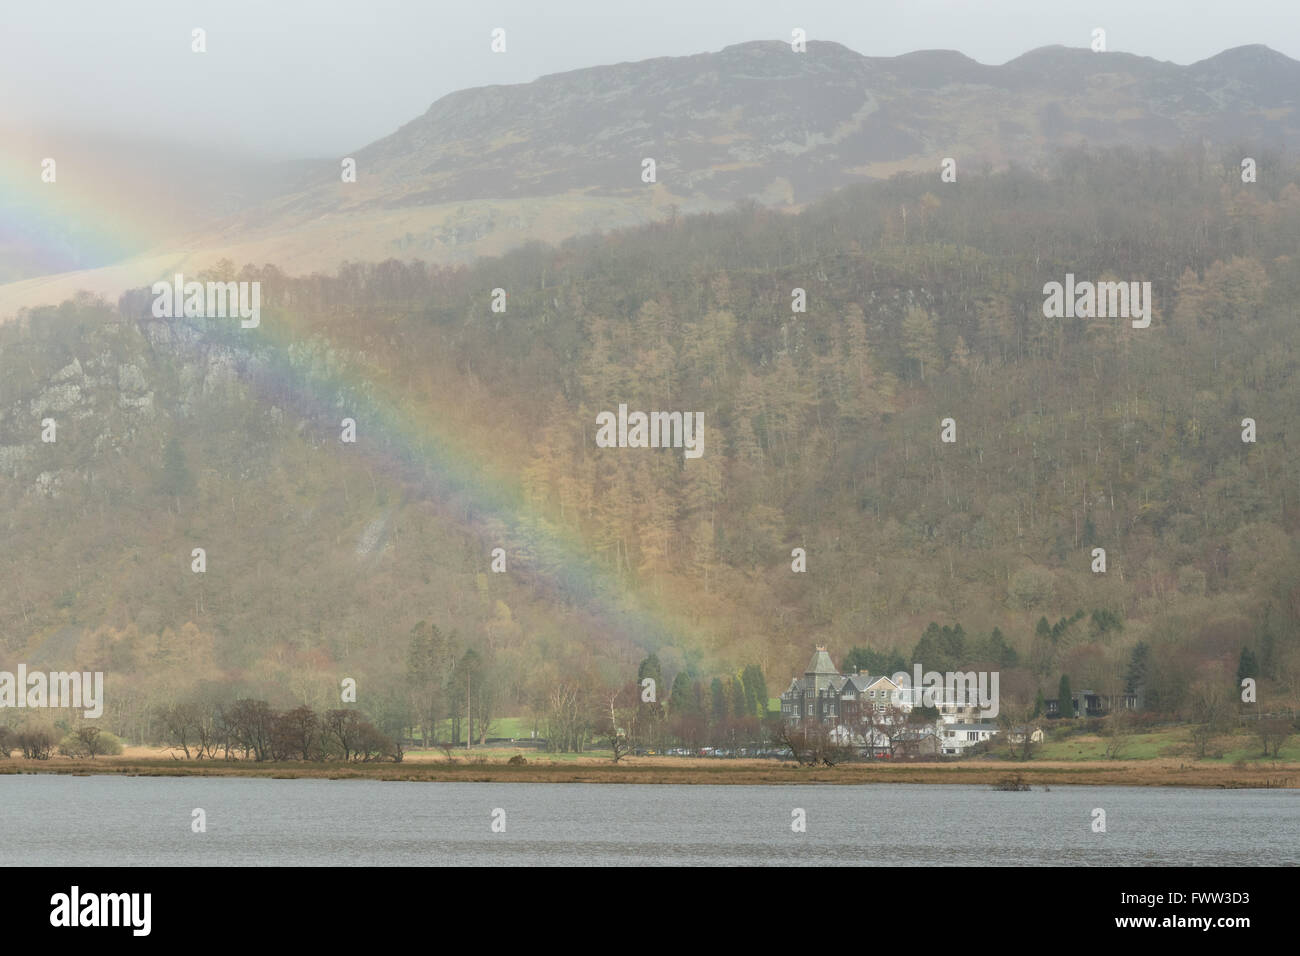 Lodore Falls Hotel at the end of the rainbow - Derwentwater, Borrowdale, Lake District, Cumbria, England, UK - Stock Image